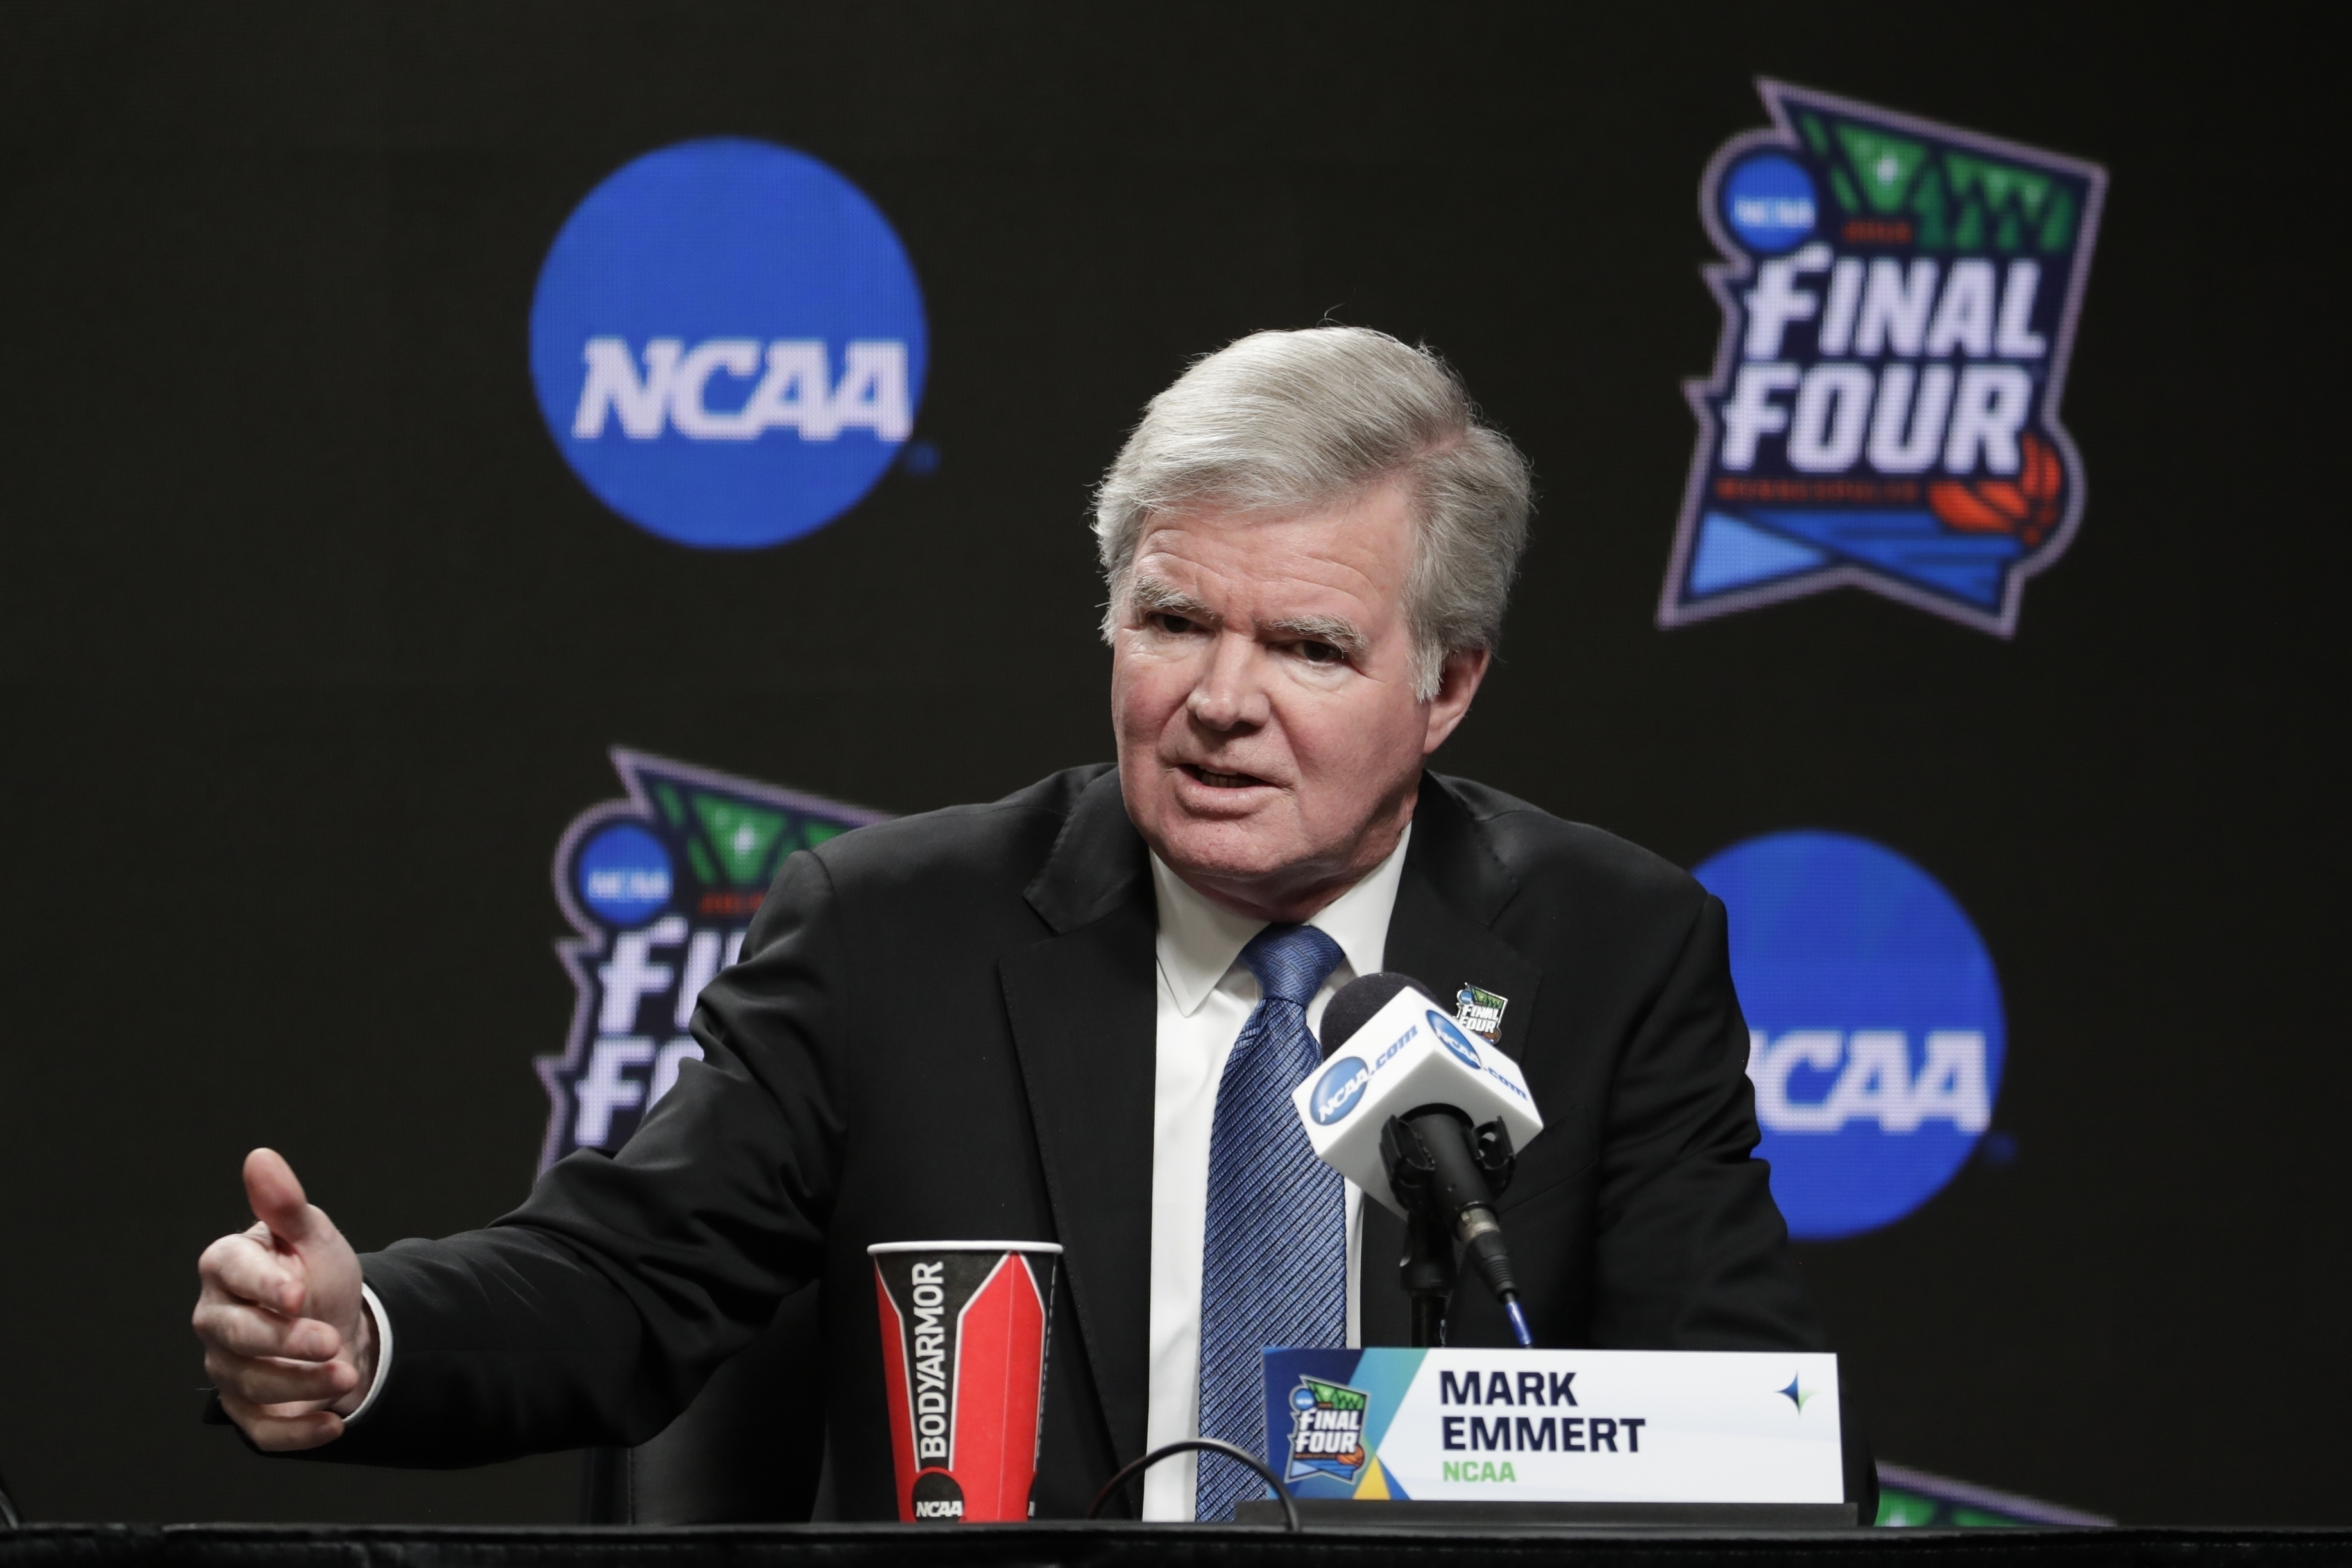 NCAA and ACC, Big 12 conferences spent $750,000 on lobbying last year